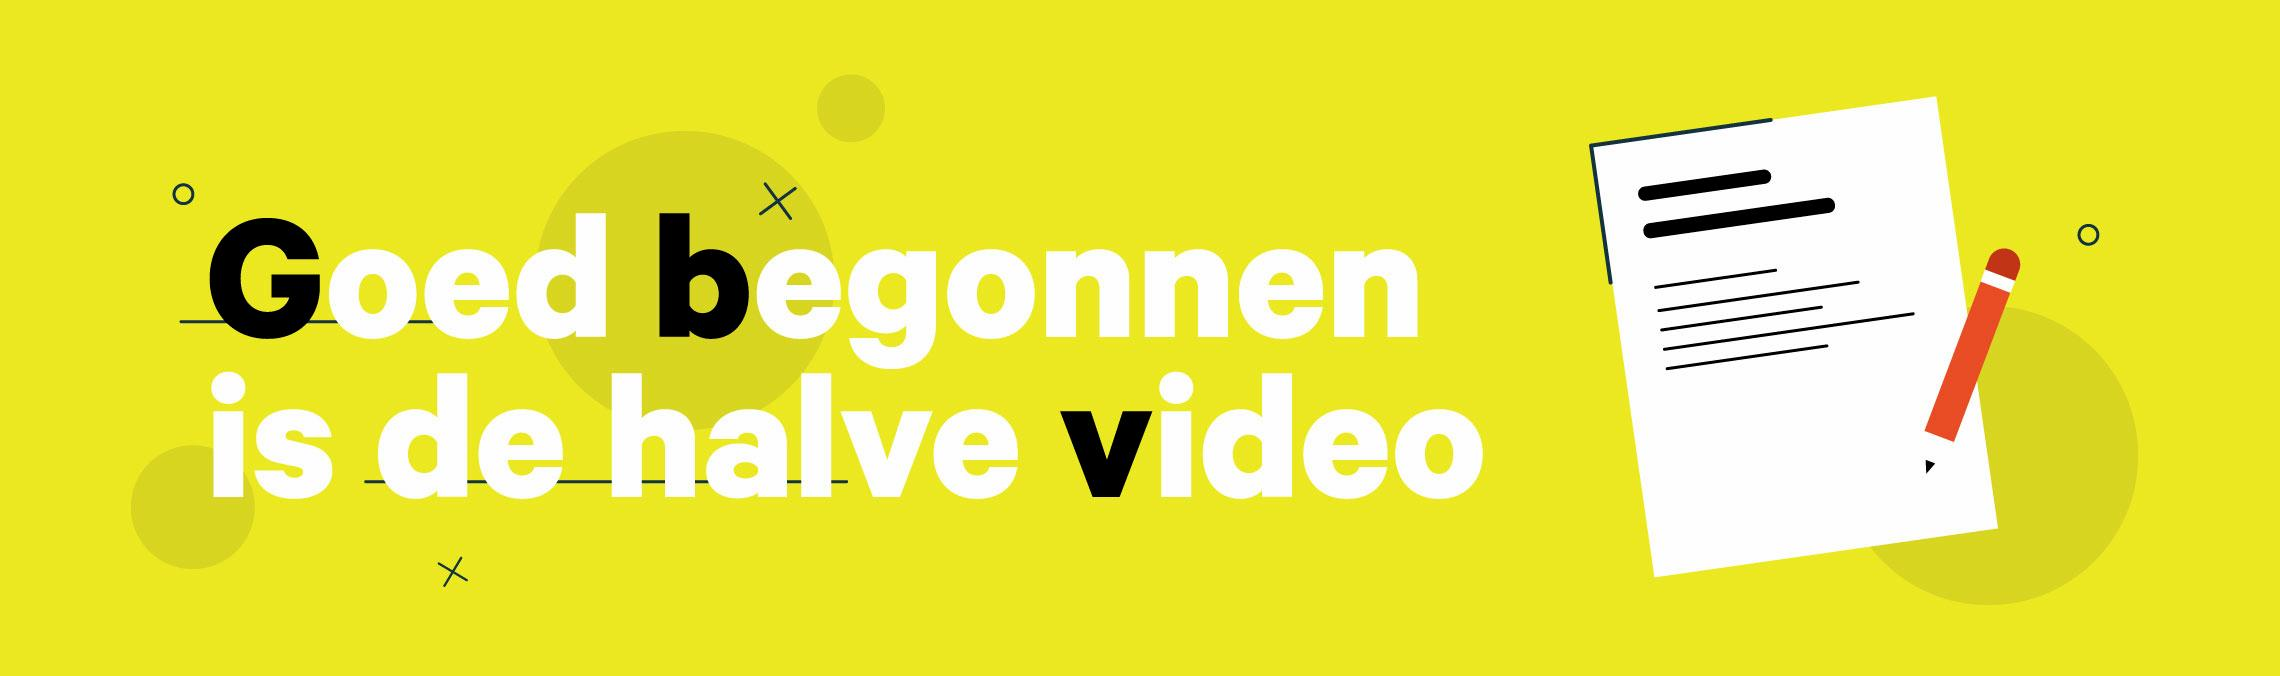 Goed begonnen is de halve video